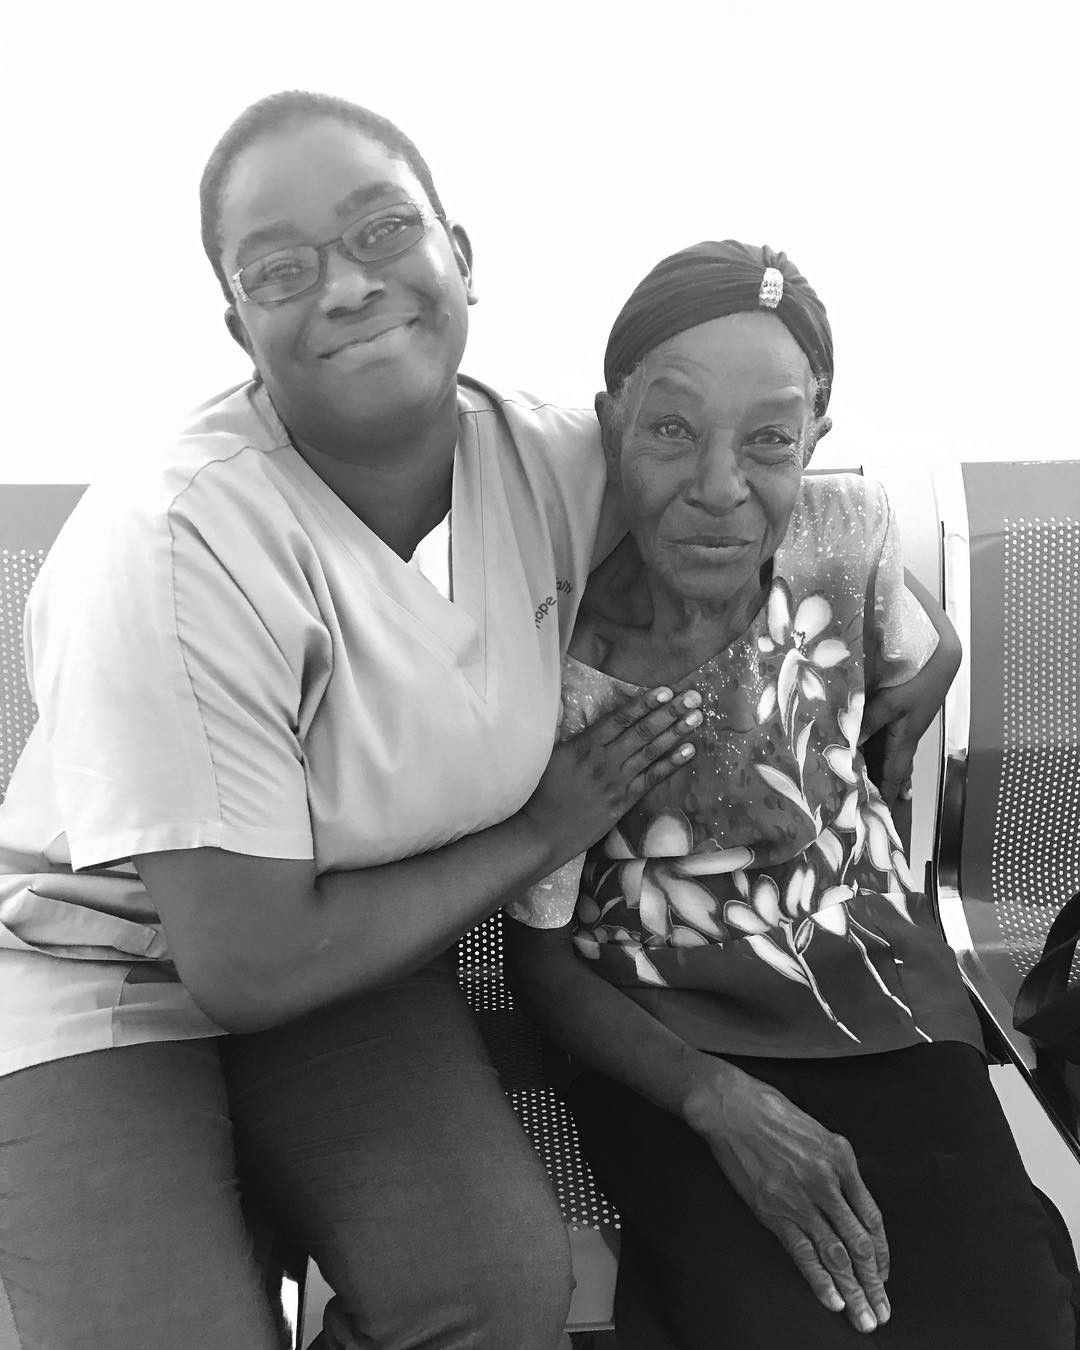 Our fabulous clinic director dr. elmide meets with one of the 15 wound care patients we see daily #haiti #hopeforhaiti #healthcare #healthcoach